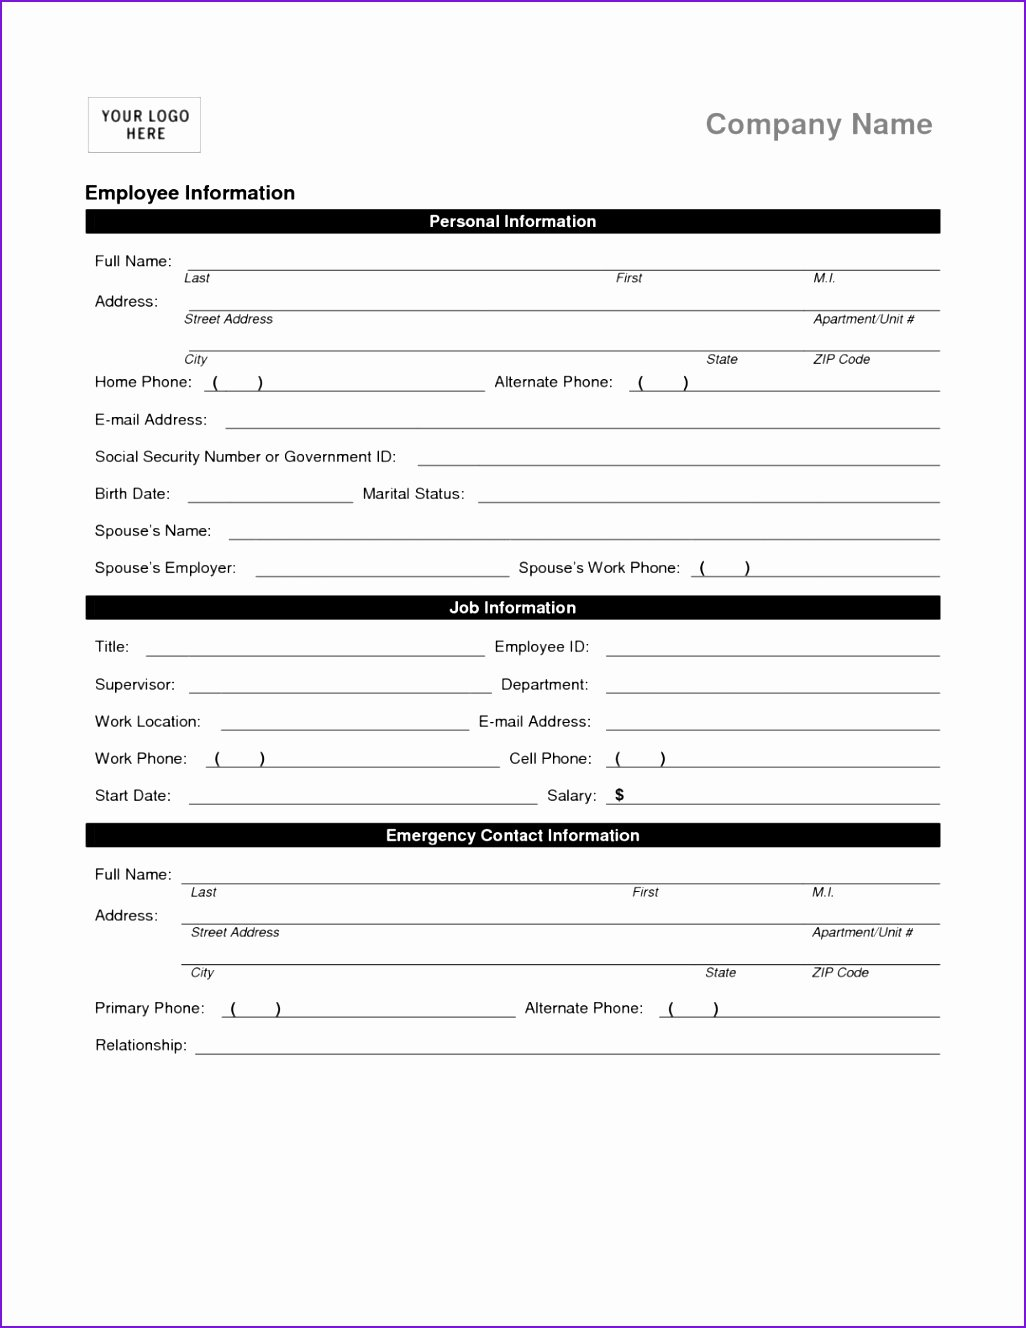 Free Employment Termination forms Luxury 6 Employee Separation Checklist